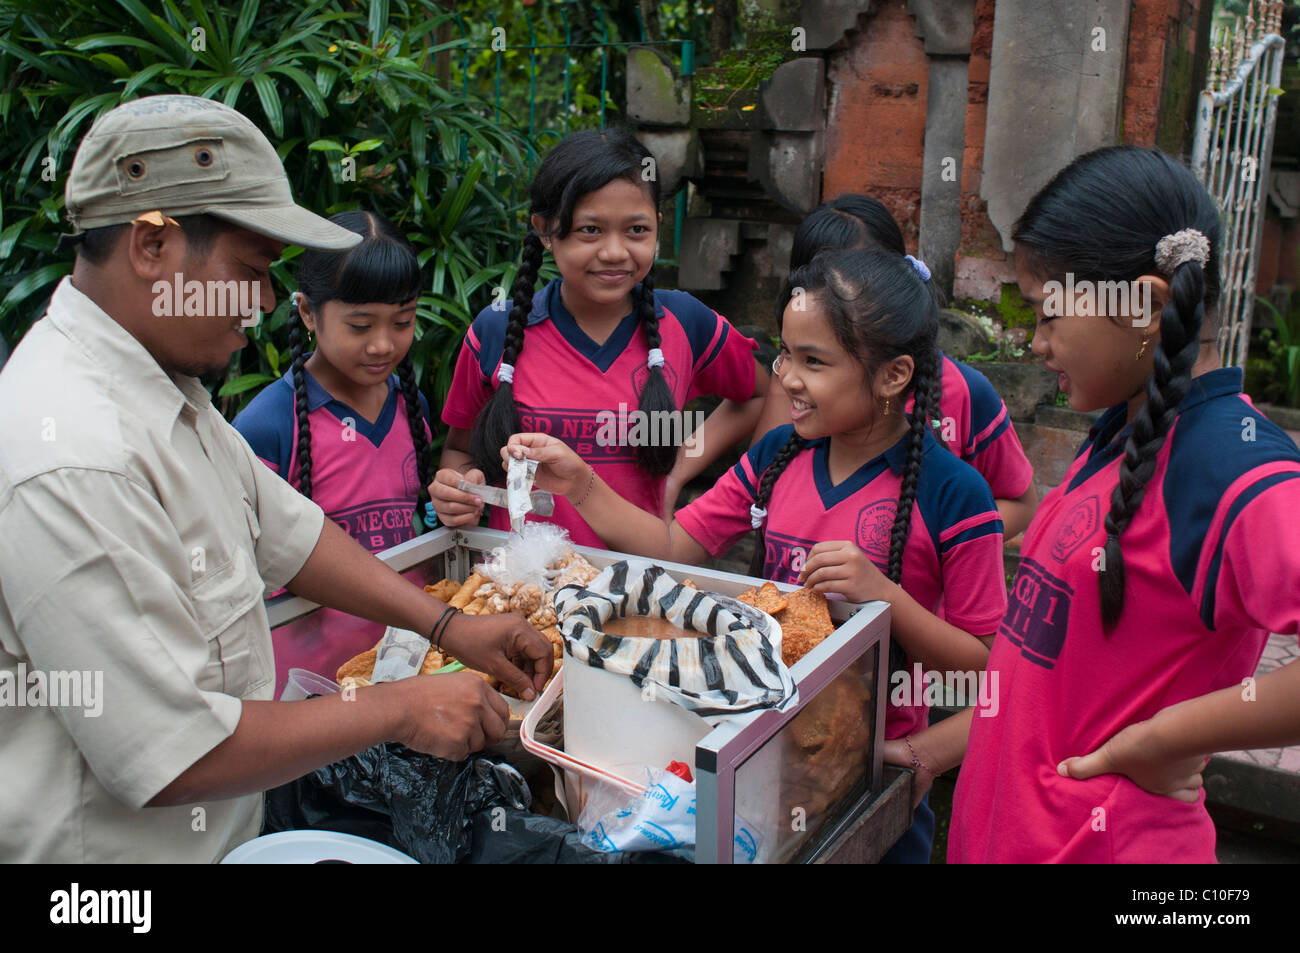 Indonesian primary school children buying after school treats from a street vendor outside their school in Ubud - Stock Image